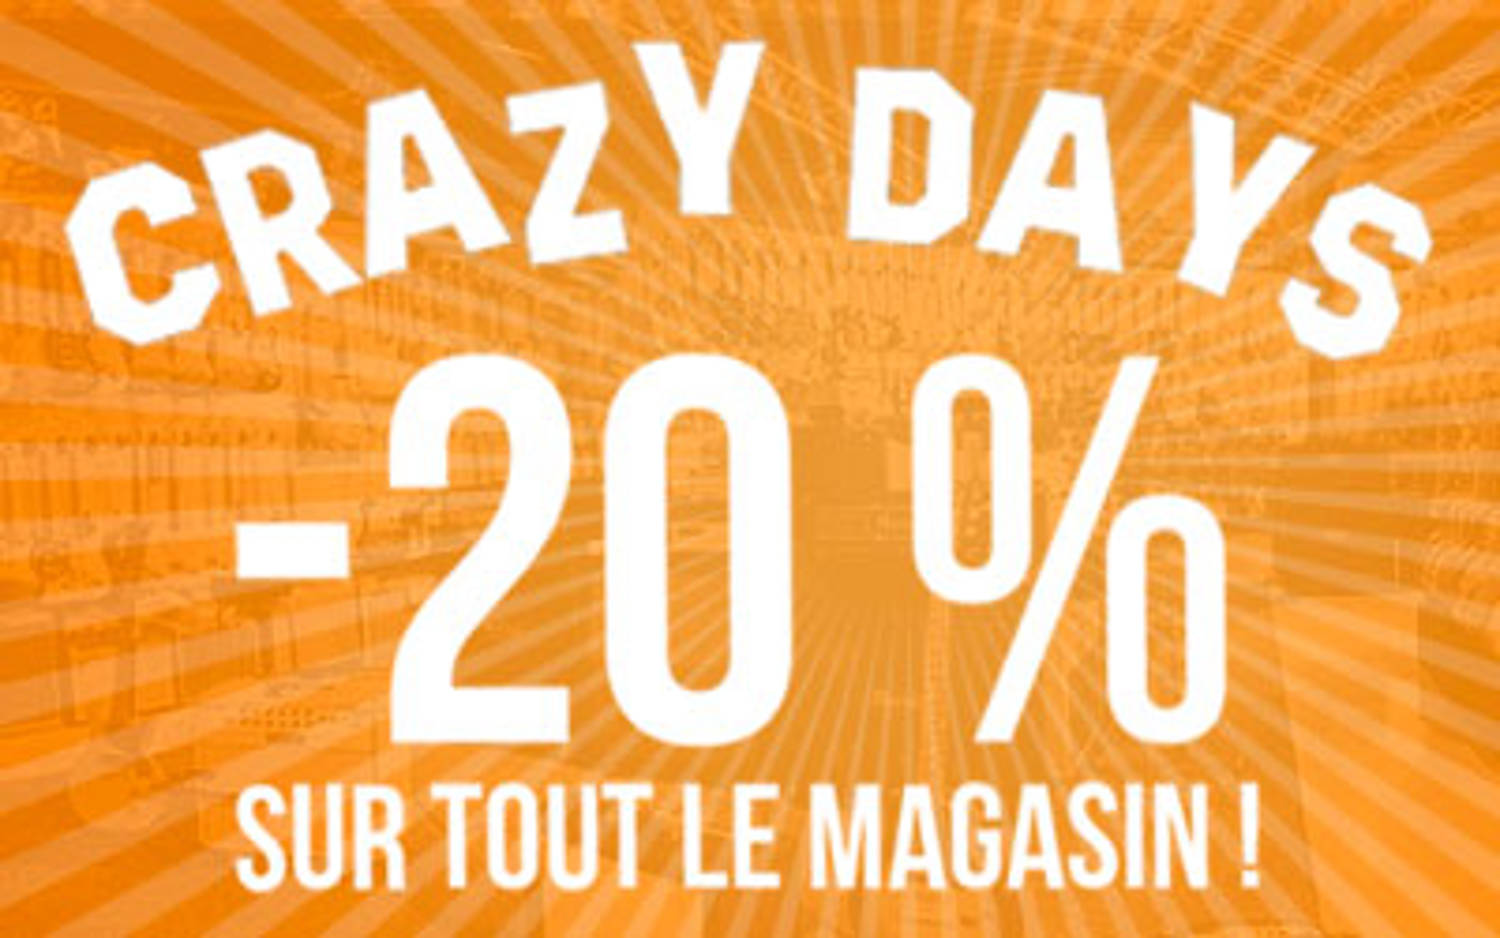 CRAZY DAYS – 20% sur tout le magasin